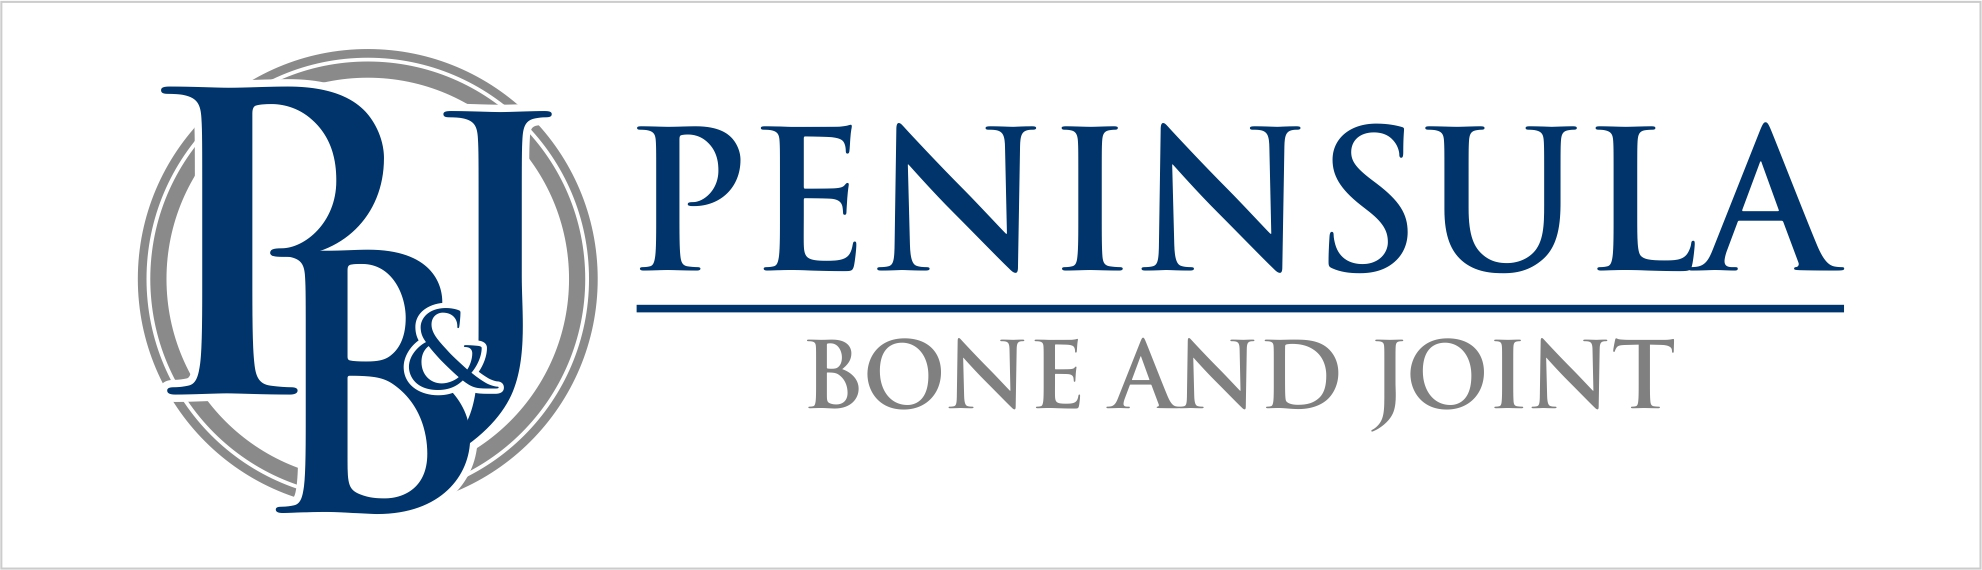 Peninsula Bone & Joint Clinic | Burlingame CA Logo